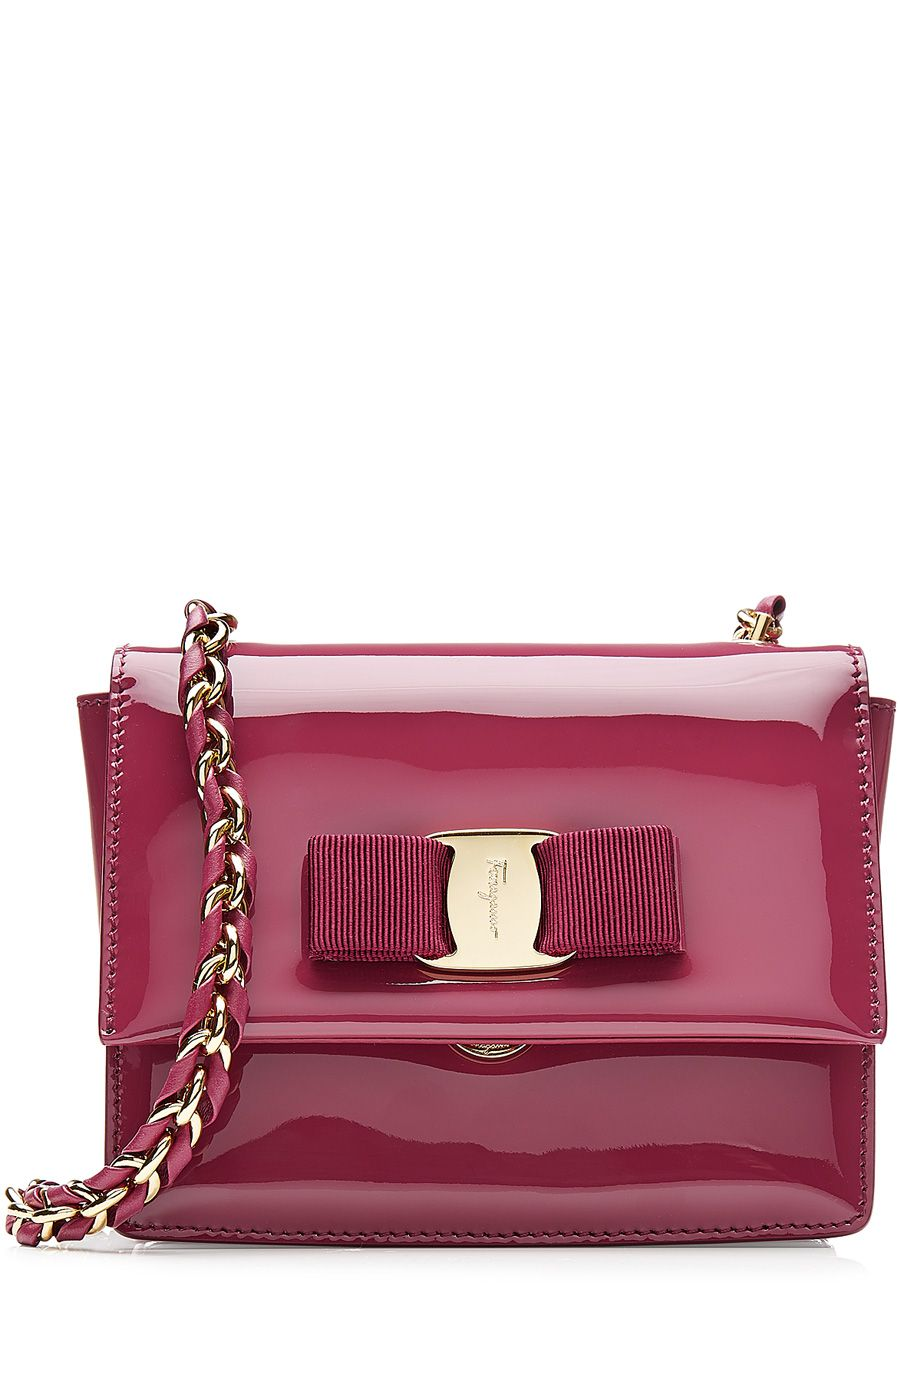 fe0d899289 SALVATORE FERRAGAMO Patent Leather Mini Ginny Shoulder Bag